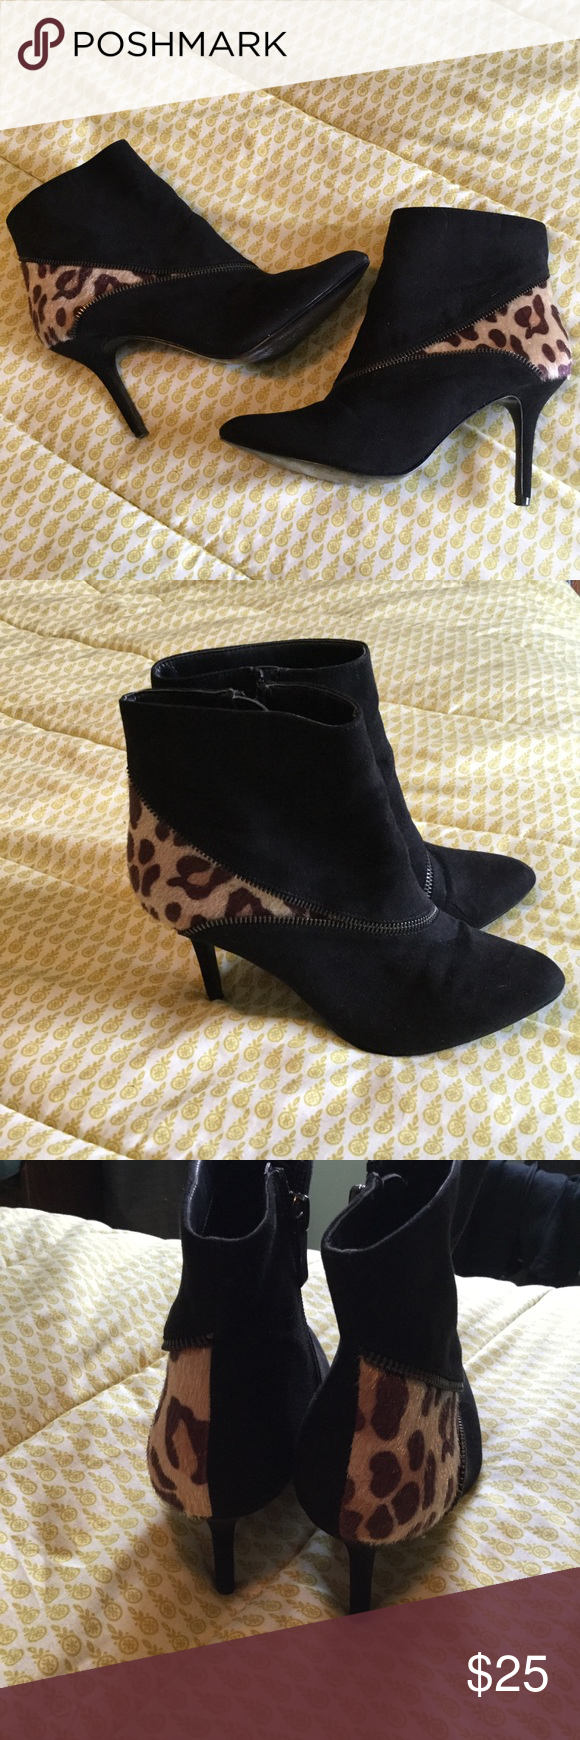 """6c114ddd1d Kelly & Katie suede and leopard ankle boots Zip up boots Stylish zipper  design on toe and leopard on the heel Approx 3"""" skinny heel Barely worn size  7.5 ..."""